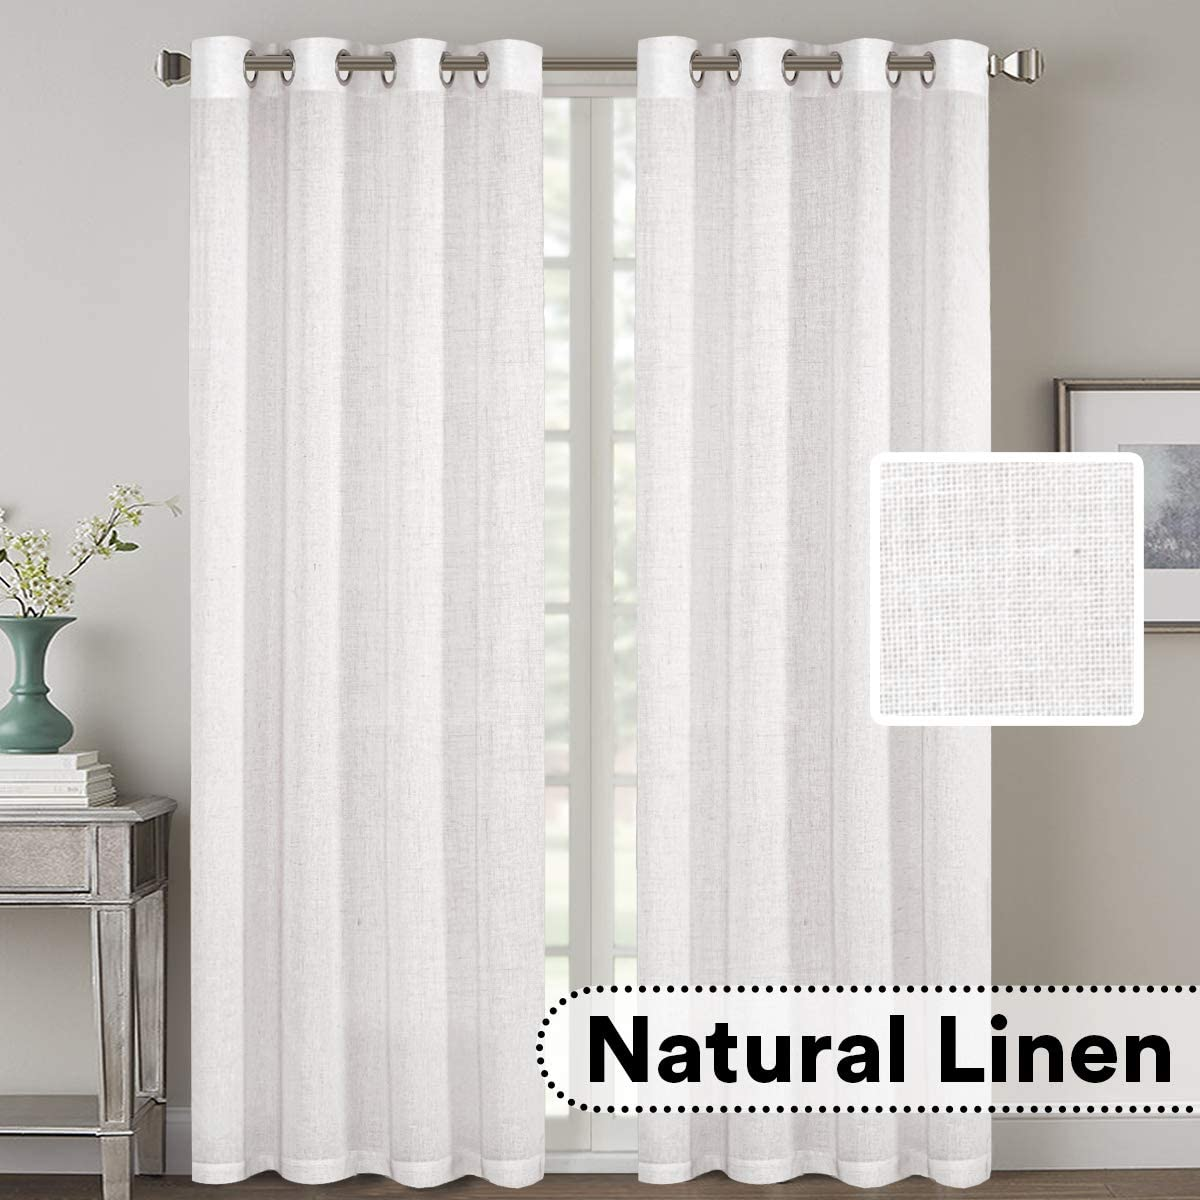 Natural Effect Extra Year-end gift Long Las Vegas Mall Curtains Made Line Rich Mater Mixed of